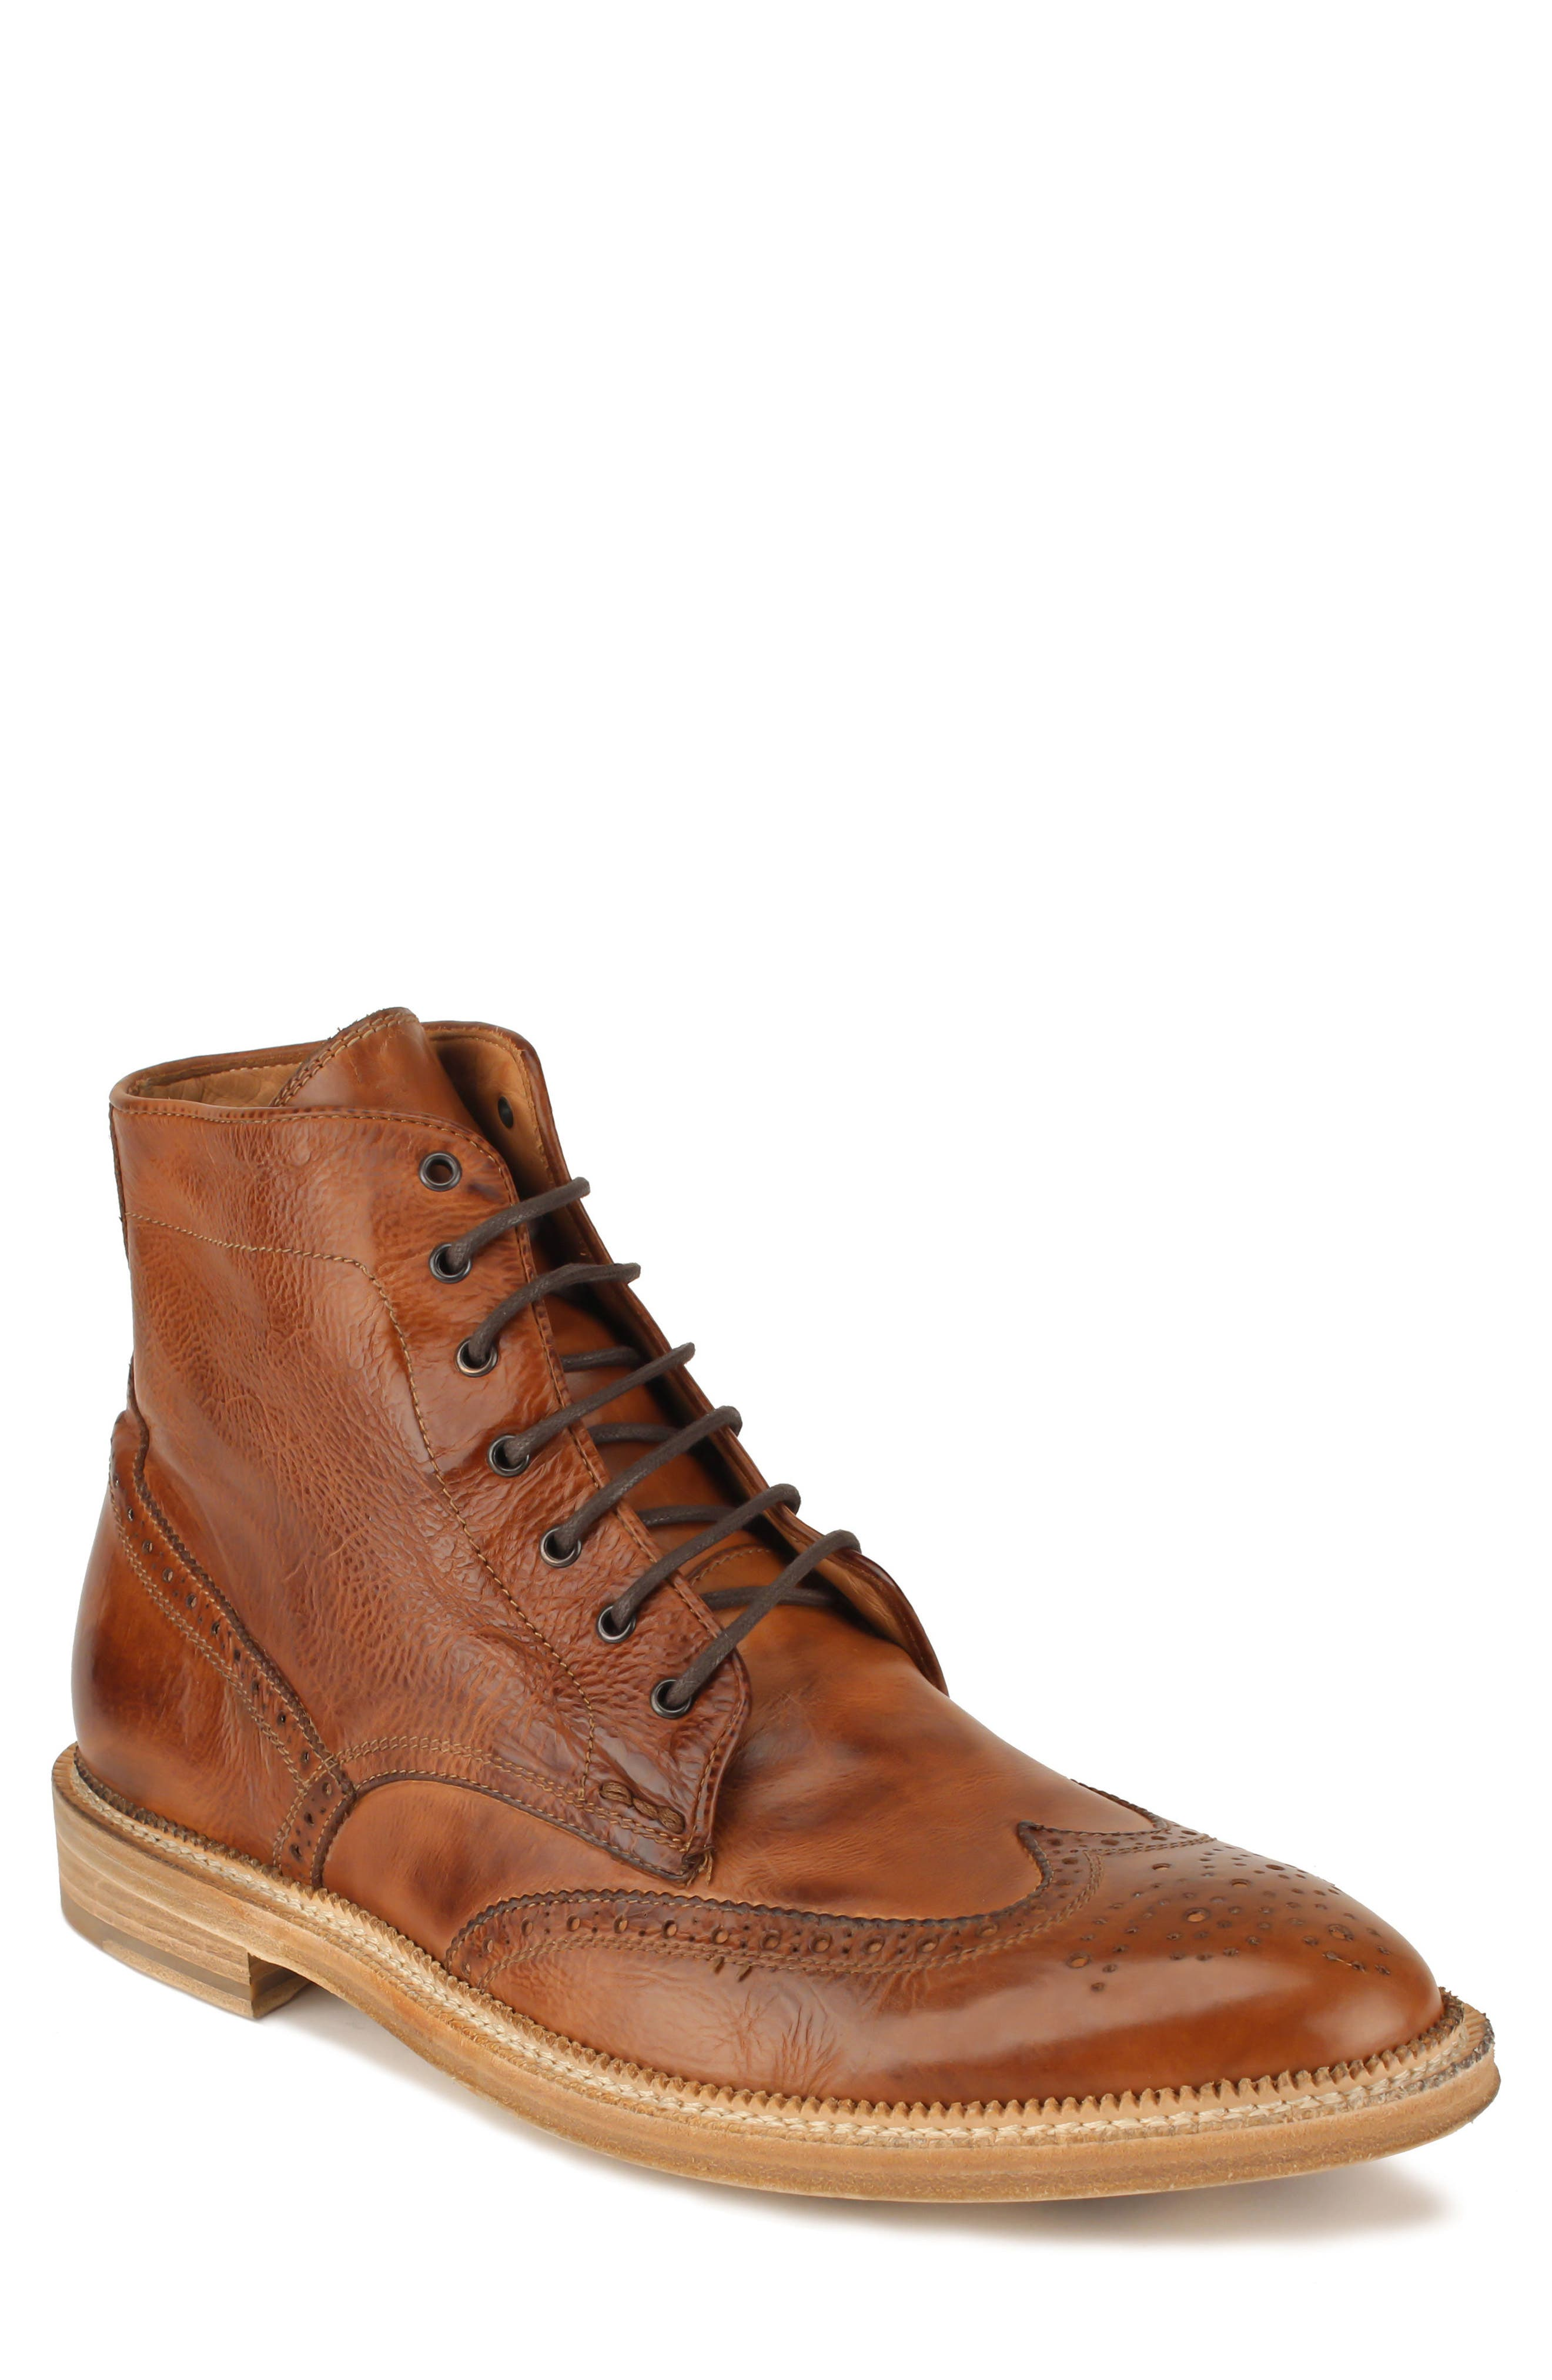 Max Wingtip Boot,                             Main thumbnail 1, color,                             WALNUT LEATHER